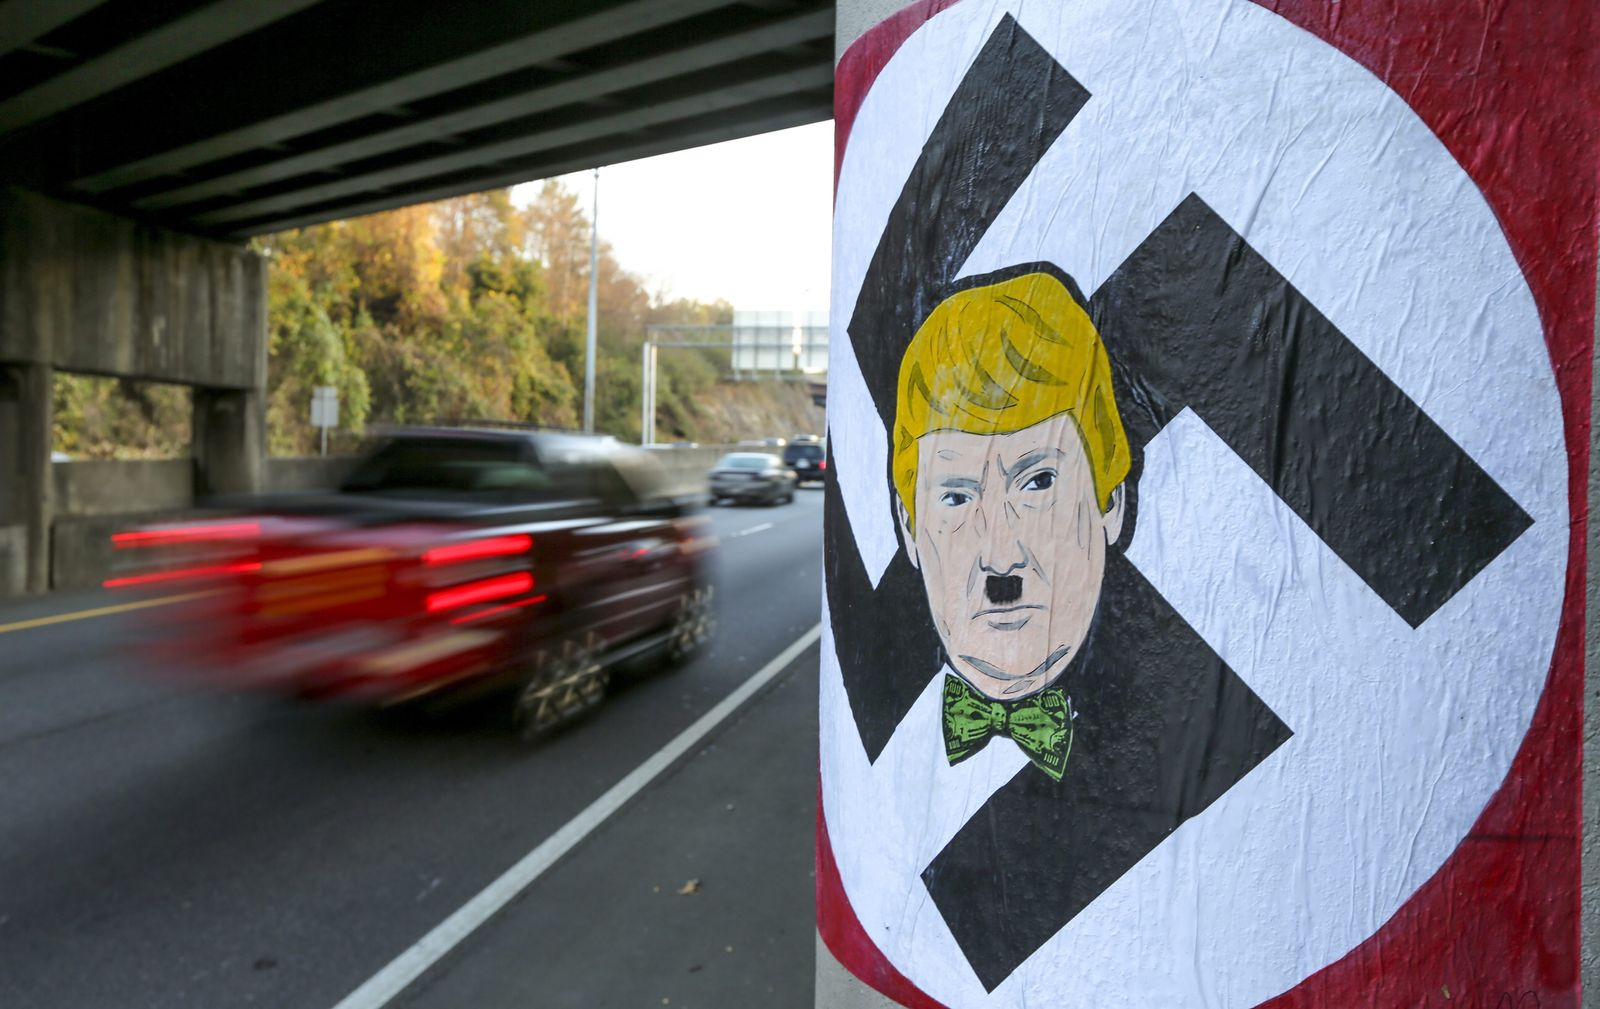 Trumps likeness painted with Hitler mustache and swastika in Atl